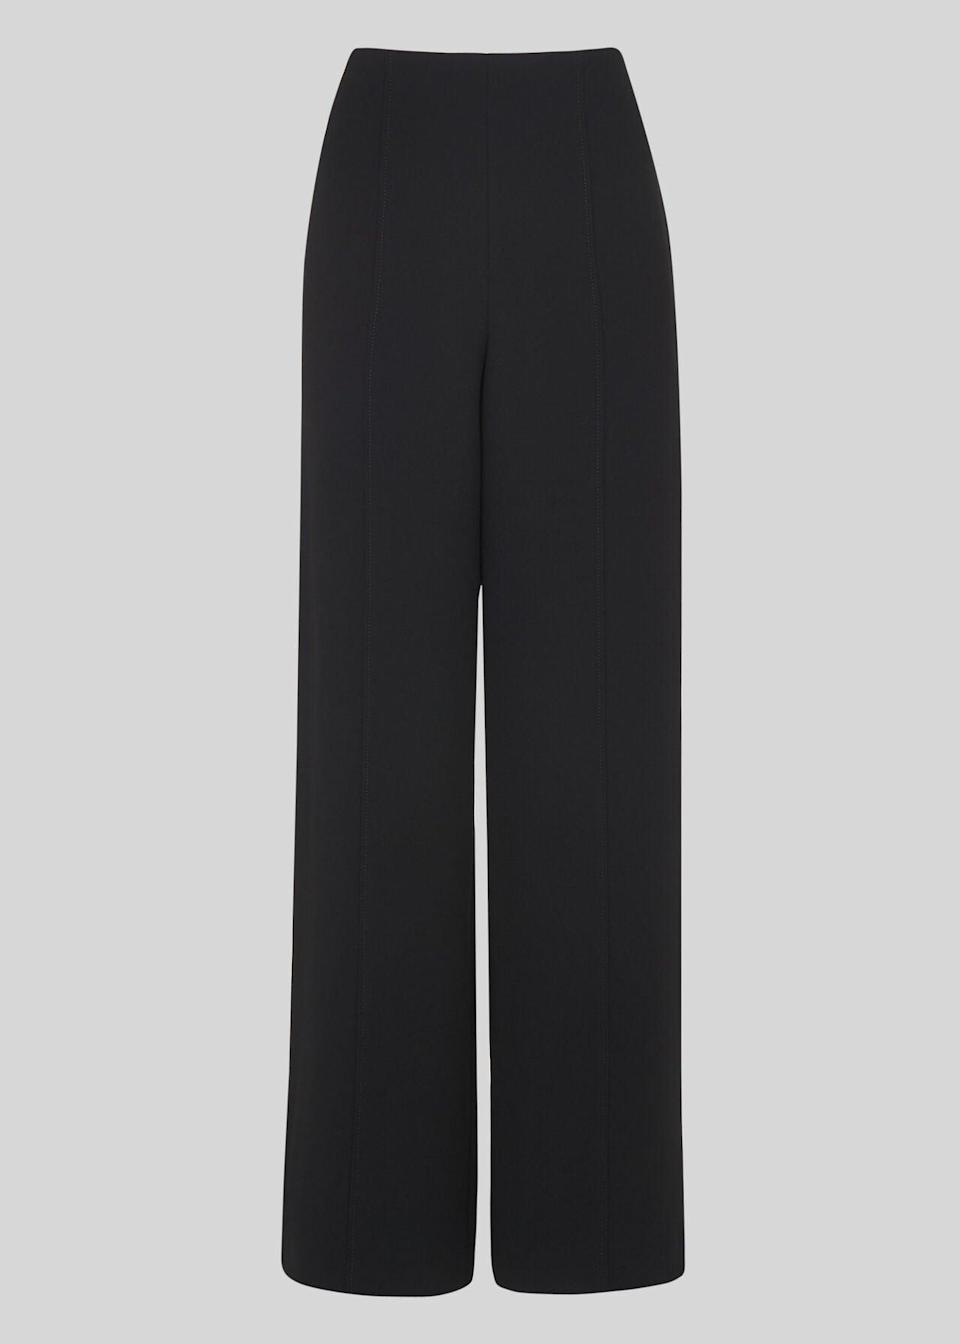 "<br><br><strong>Whistles</strong> Wide Leg Crepe Trouser, $, available at <a href=""https://www.whistles.com/product/wide-leg-crepe-trouser-31351.html#q=black%20trousrs&is=false&sz=60&start=0&isSecondPage=false&pid=wide-leg-crepe-trouser-31351&pos=35"" rel=""nofollow noopener"" target=""_blank"" data-ylk=""slk:Whistles"" class=""link rapid-noclick-resp"">Whistles</a>"